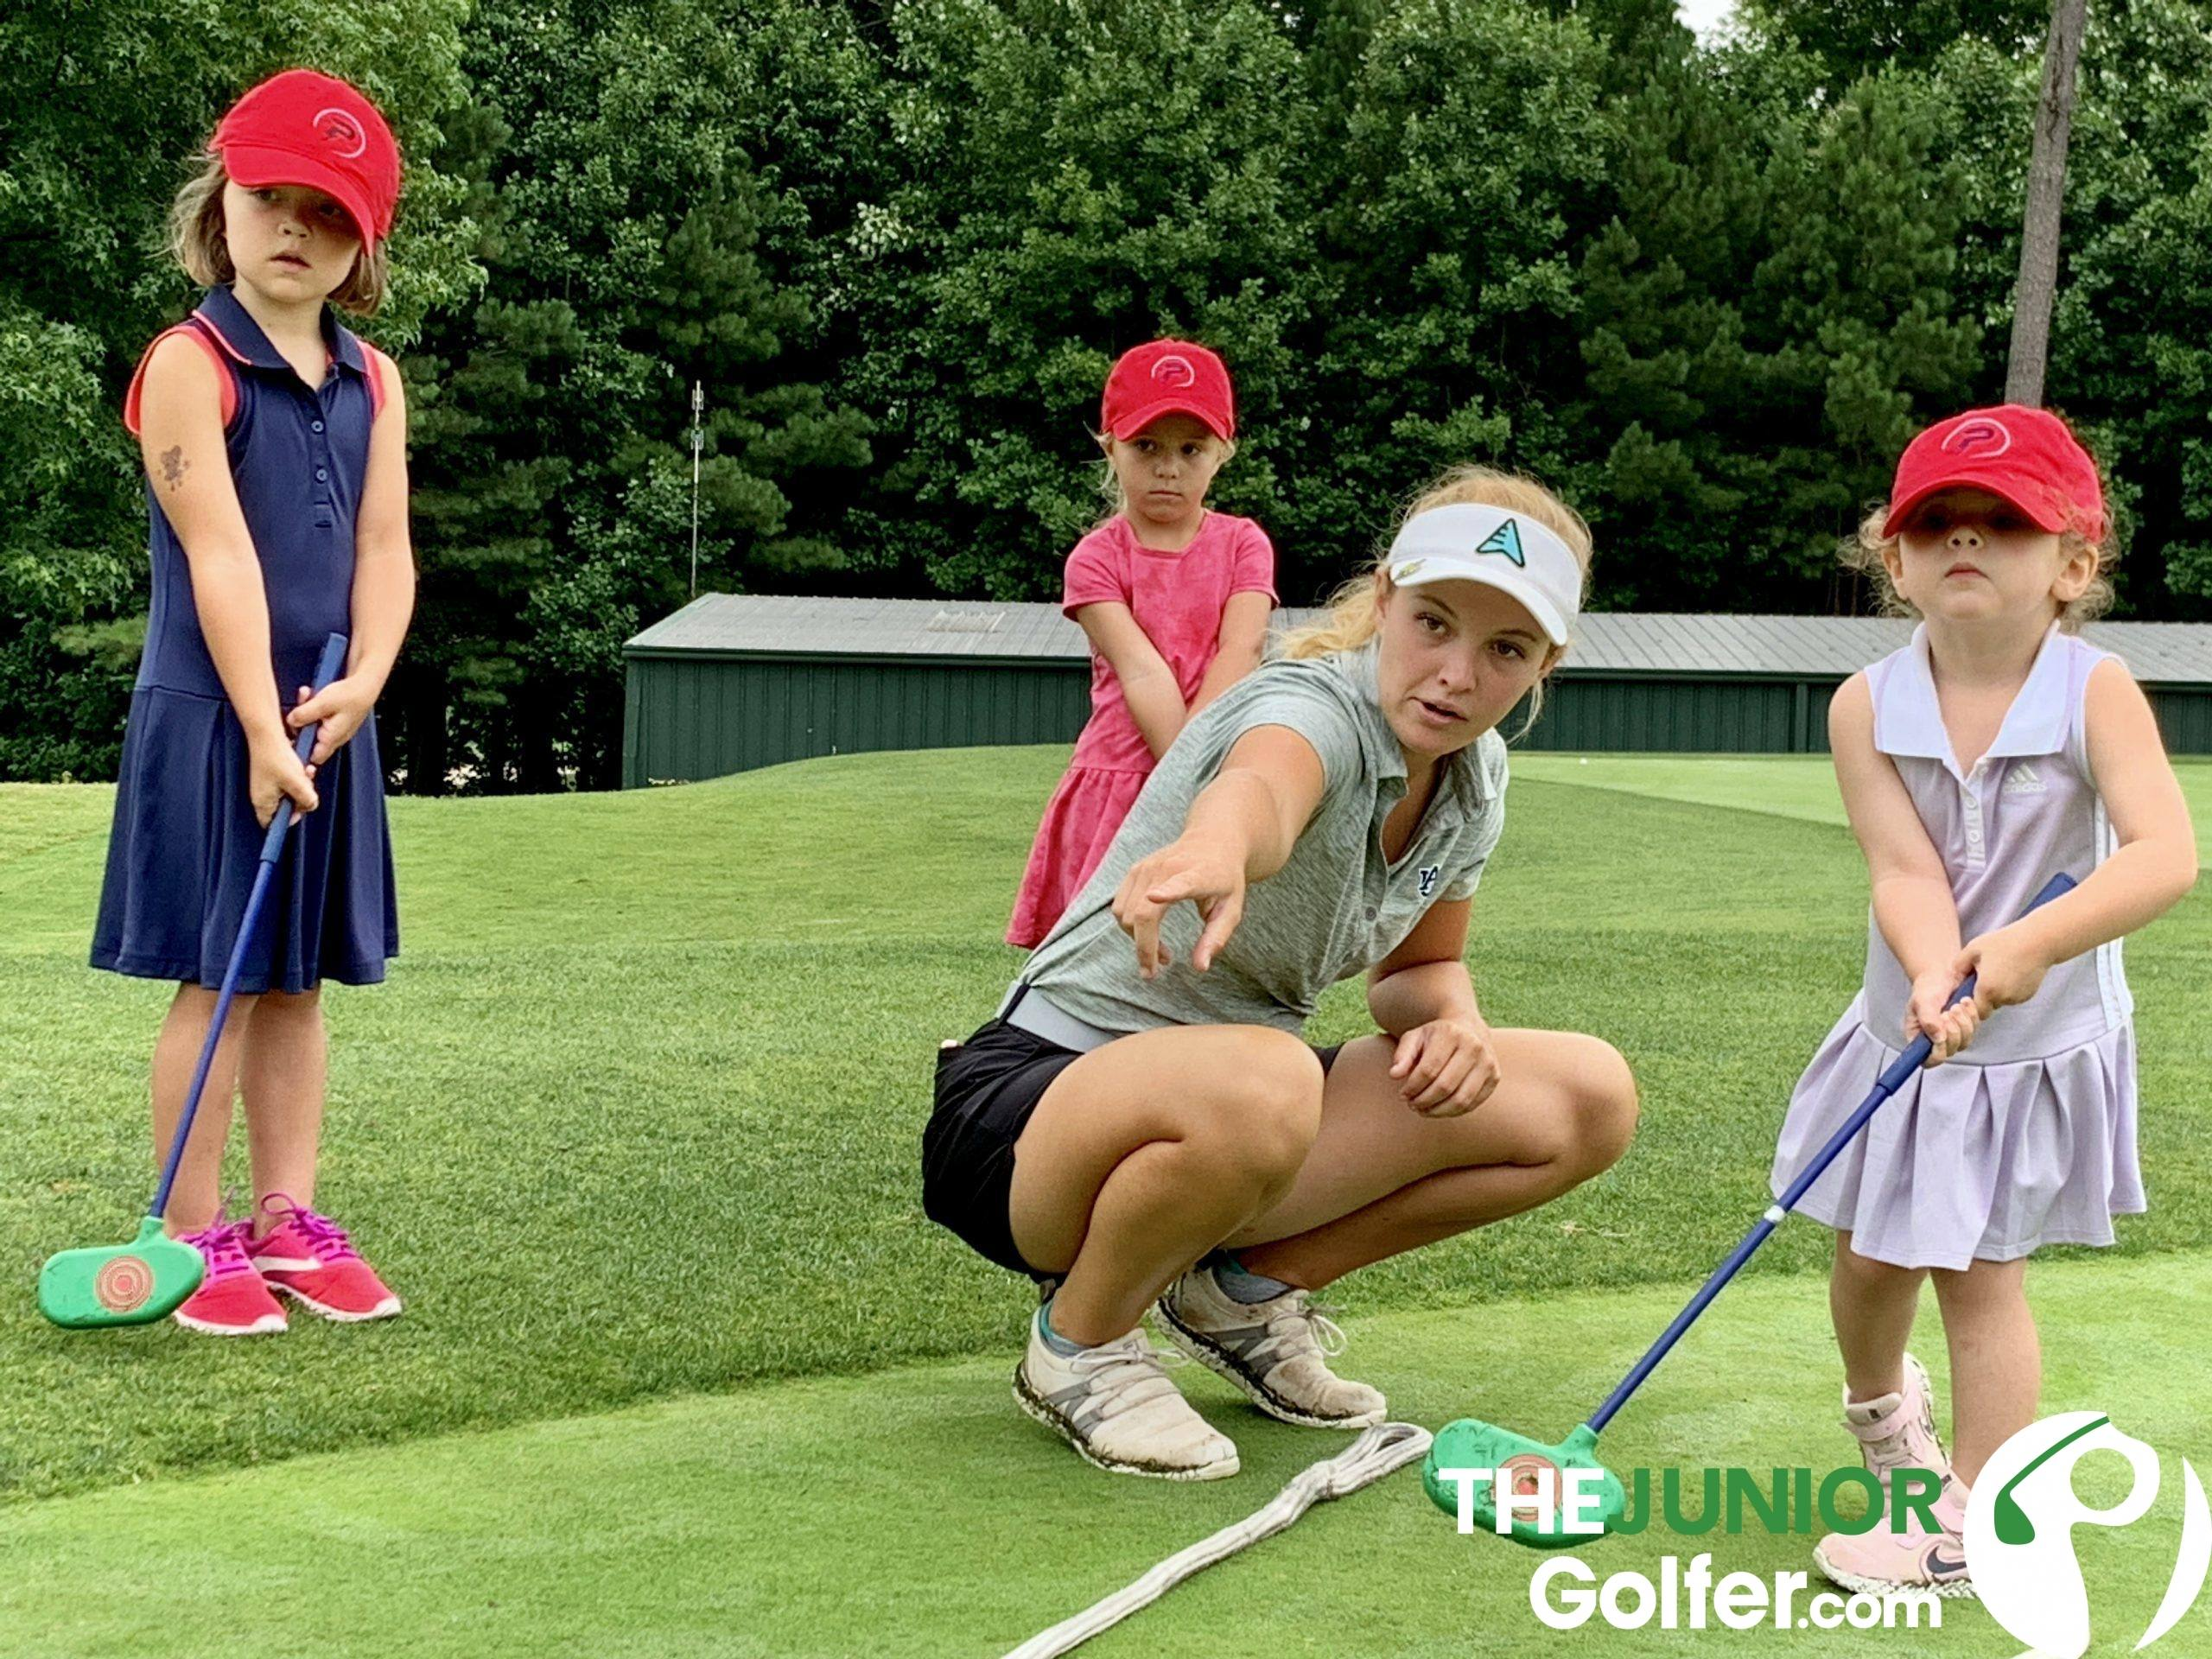 when should my kid start golf lessons